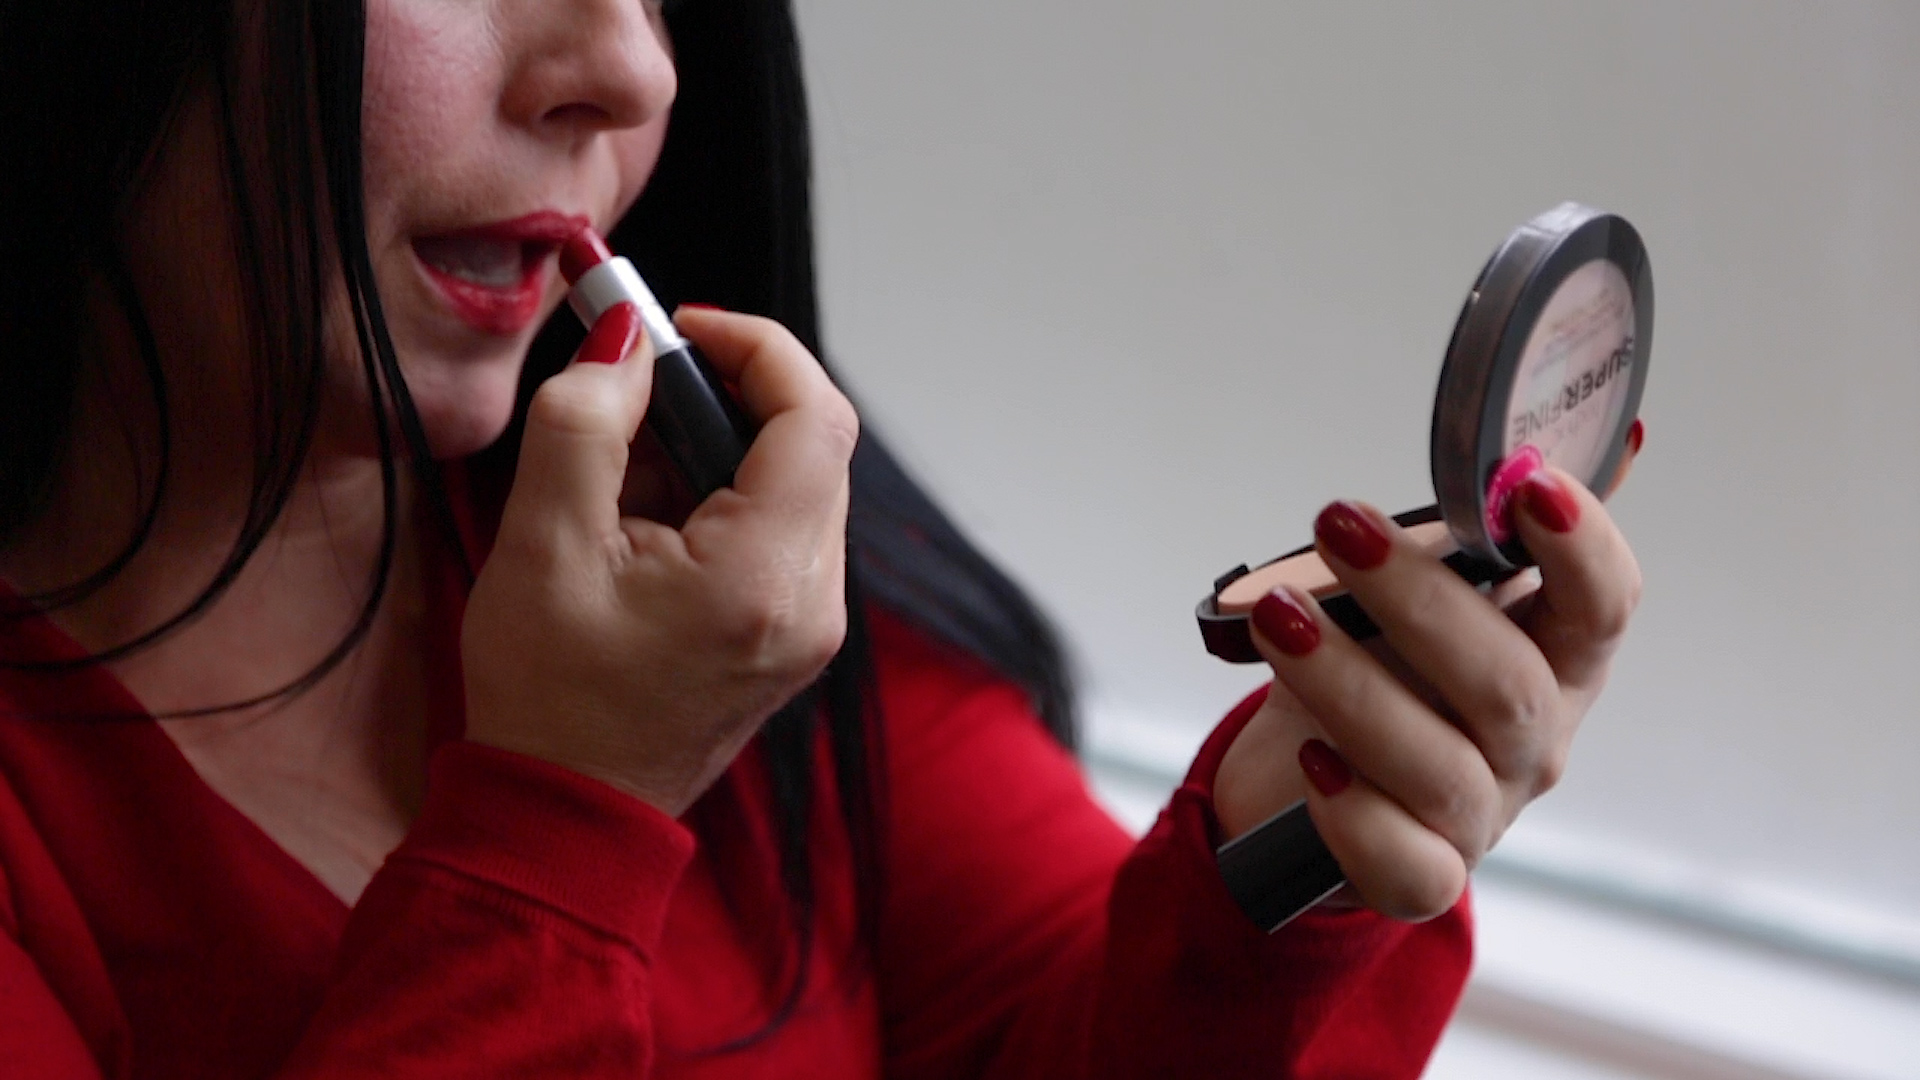 A person applies make-up in a handheld mirror